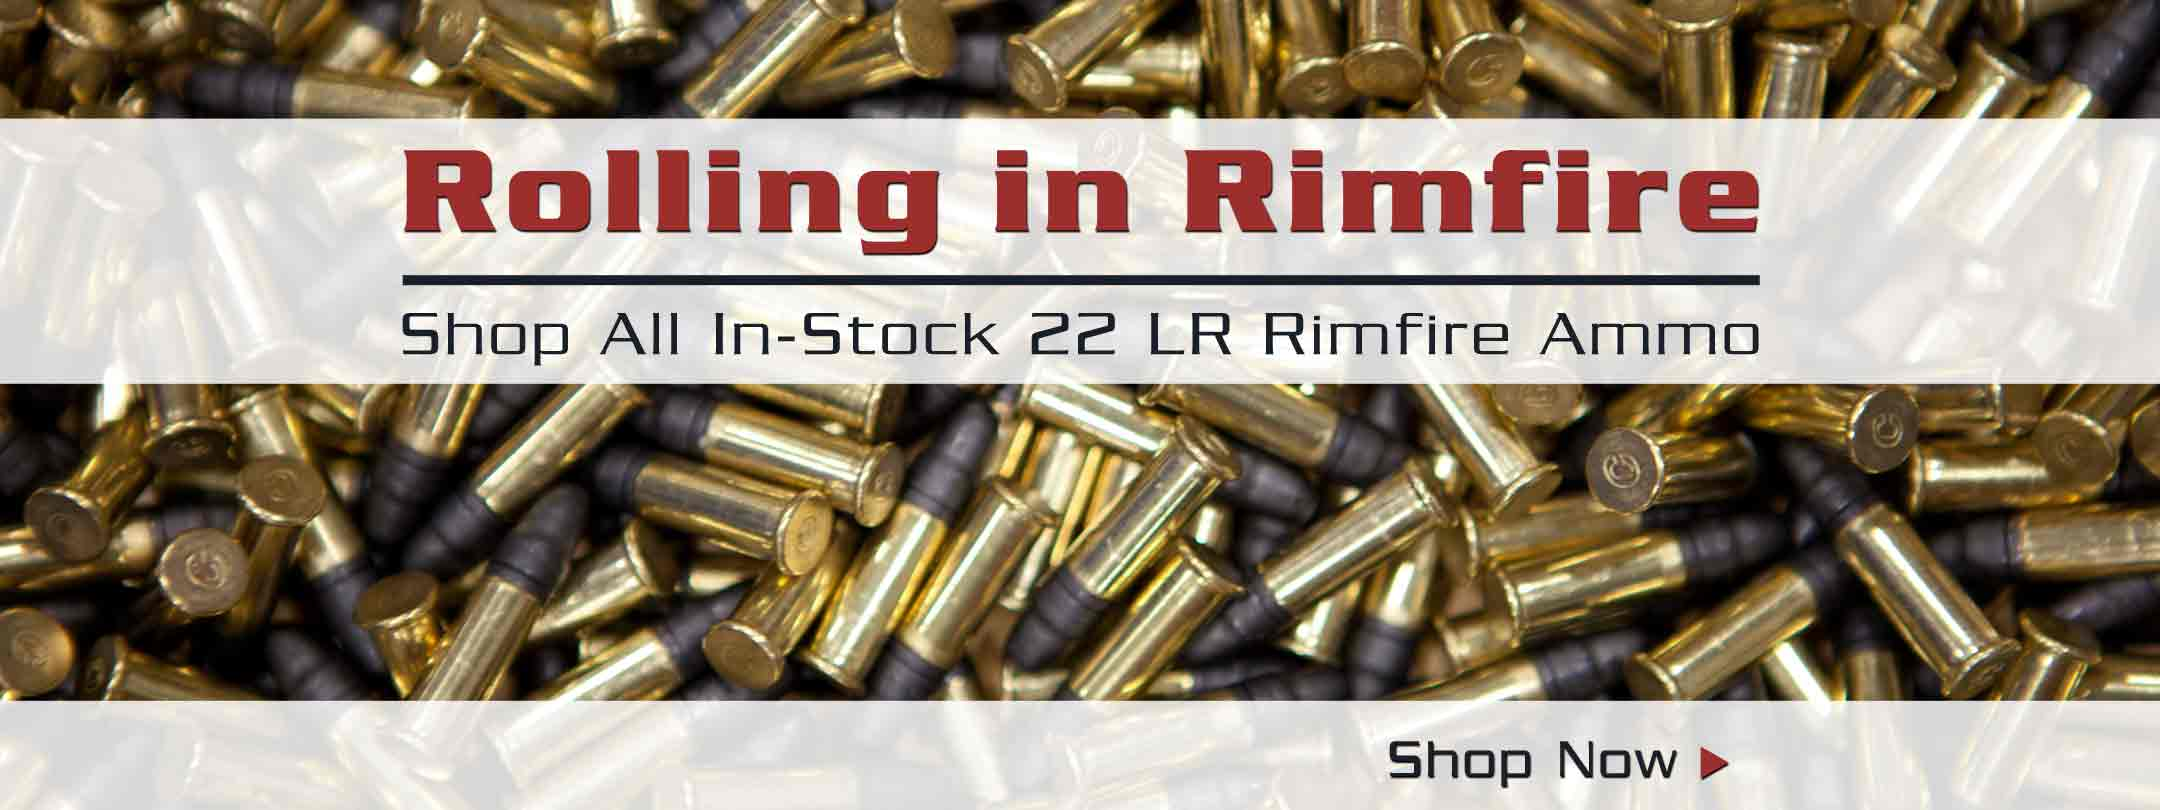 Rolling in Rimfire - Shop all in-stock 22 LR